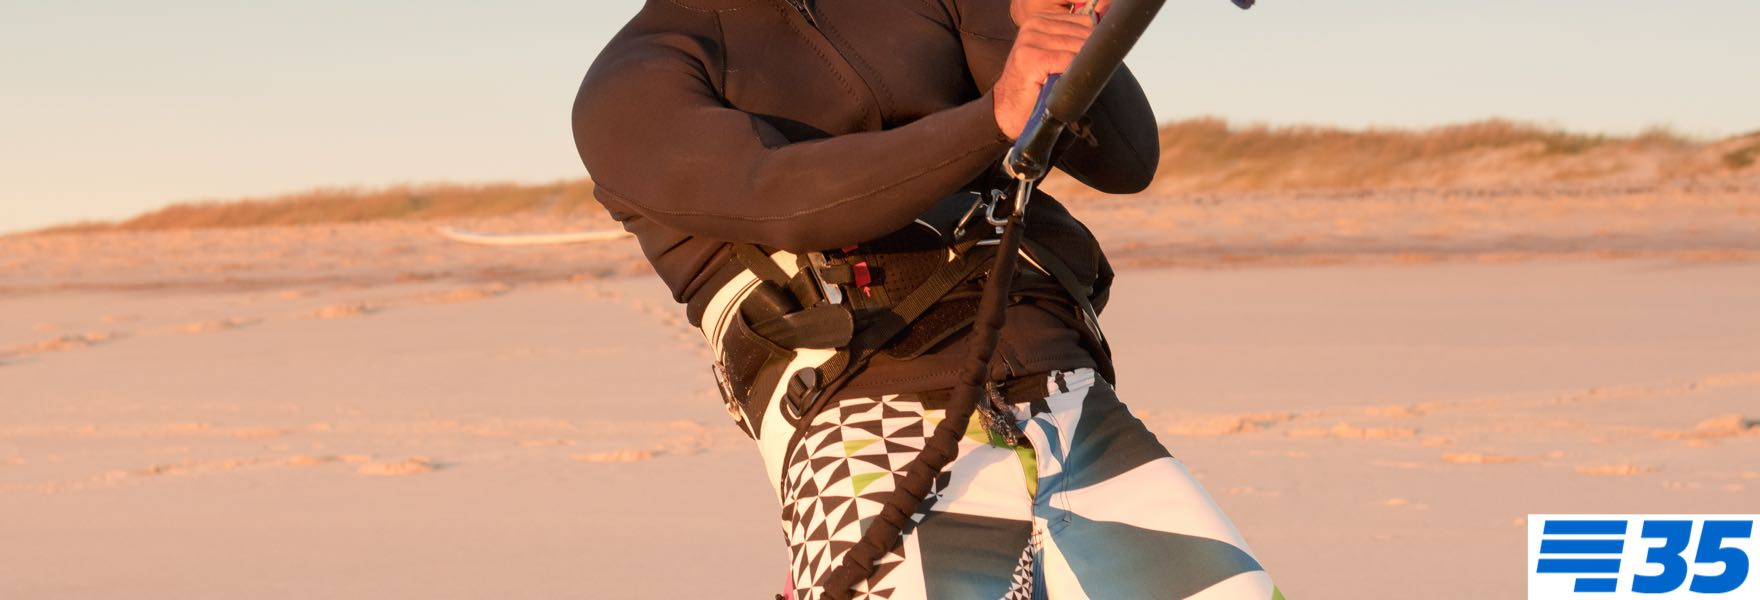 How do you maintain a kite? 12 tips to prevent wear - 35 KNOTS